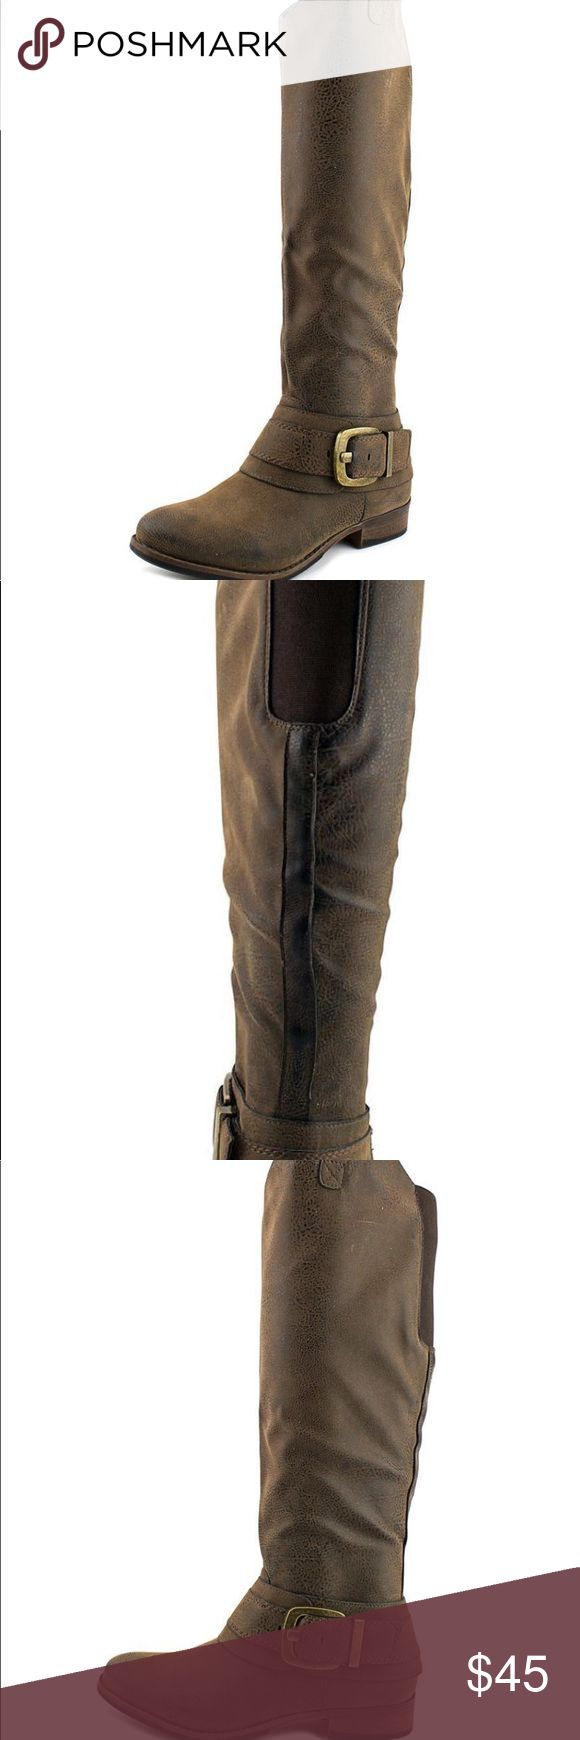 Ruff Hewn distressed brown riding boots Worn a handful of times. Comes with box 📦 Ruff Hewn Shoes Over the Knee Boots